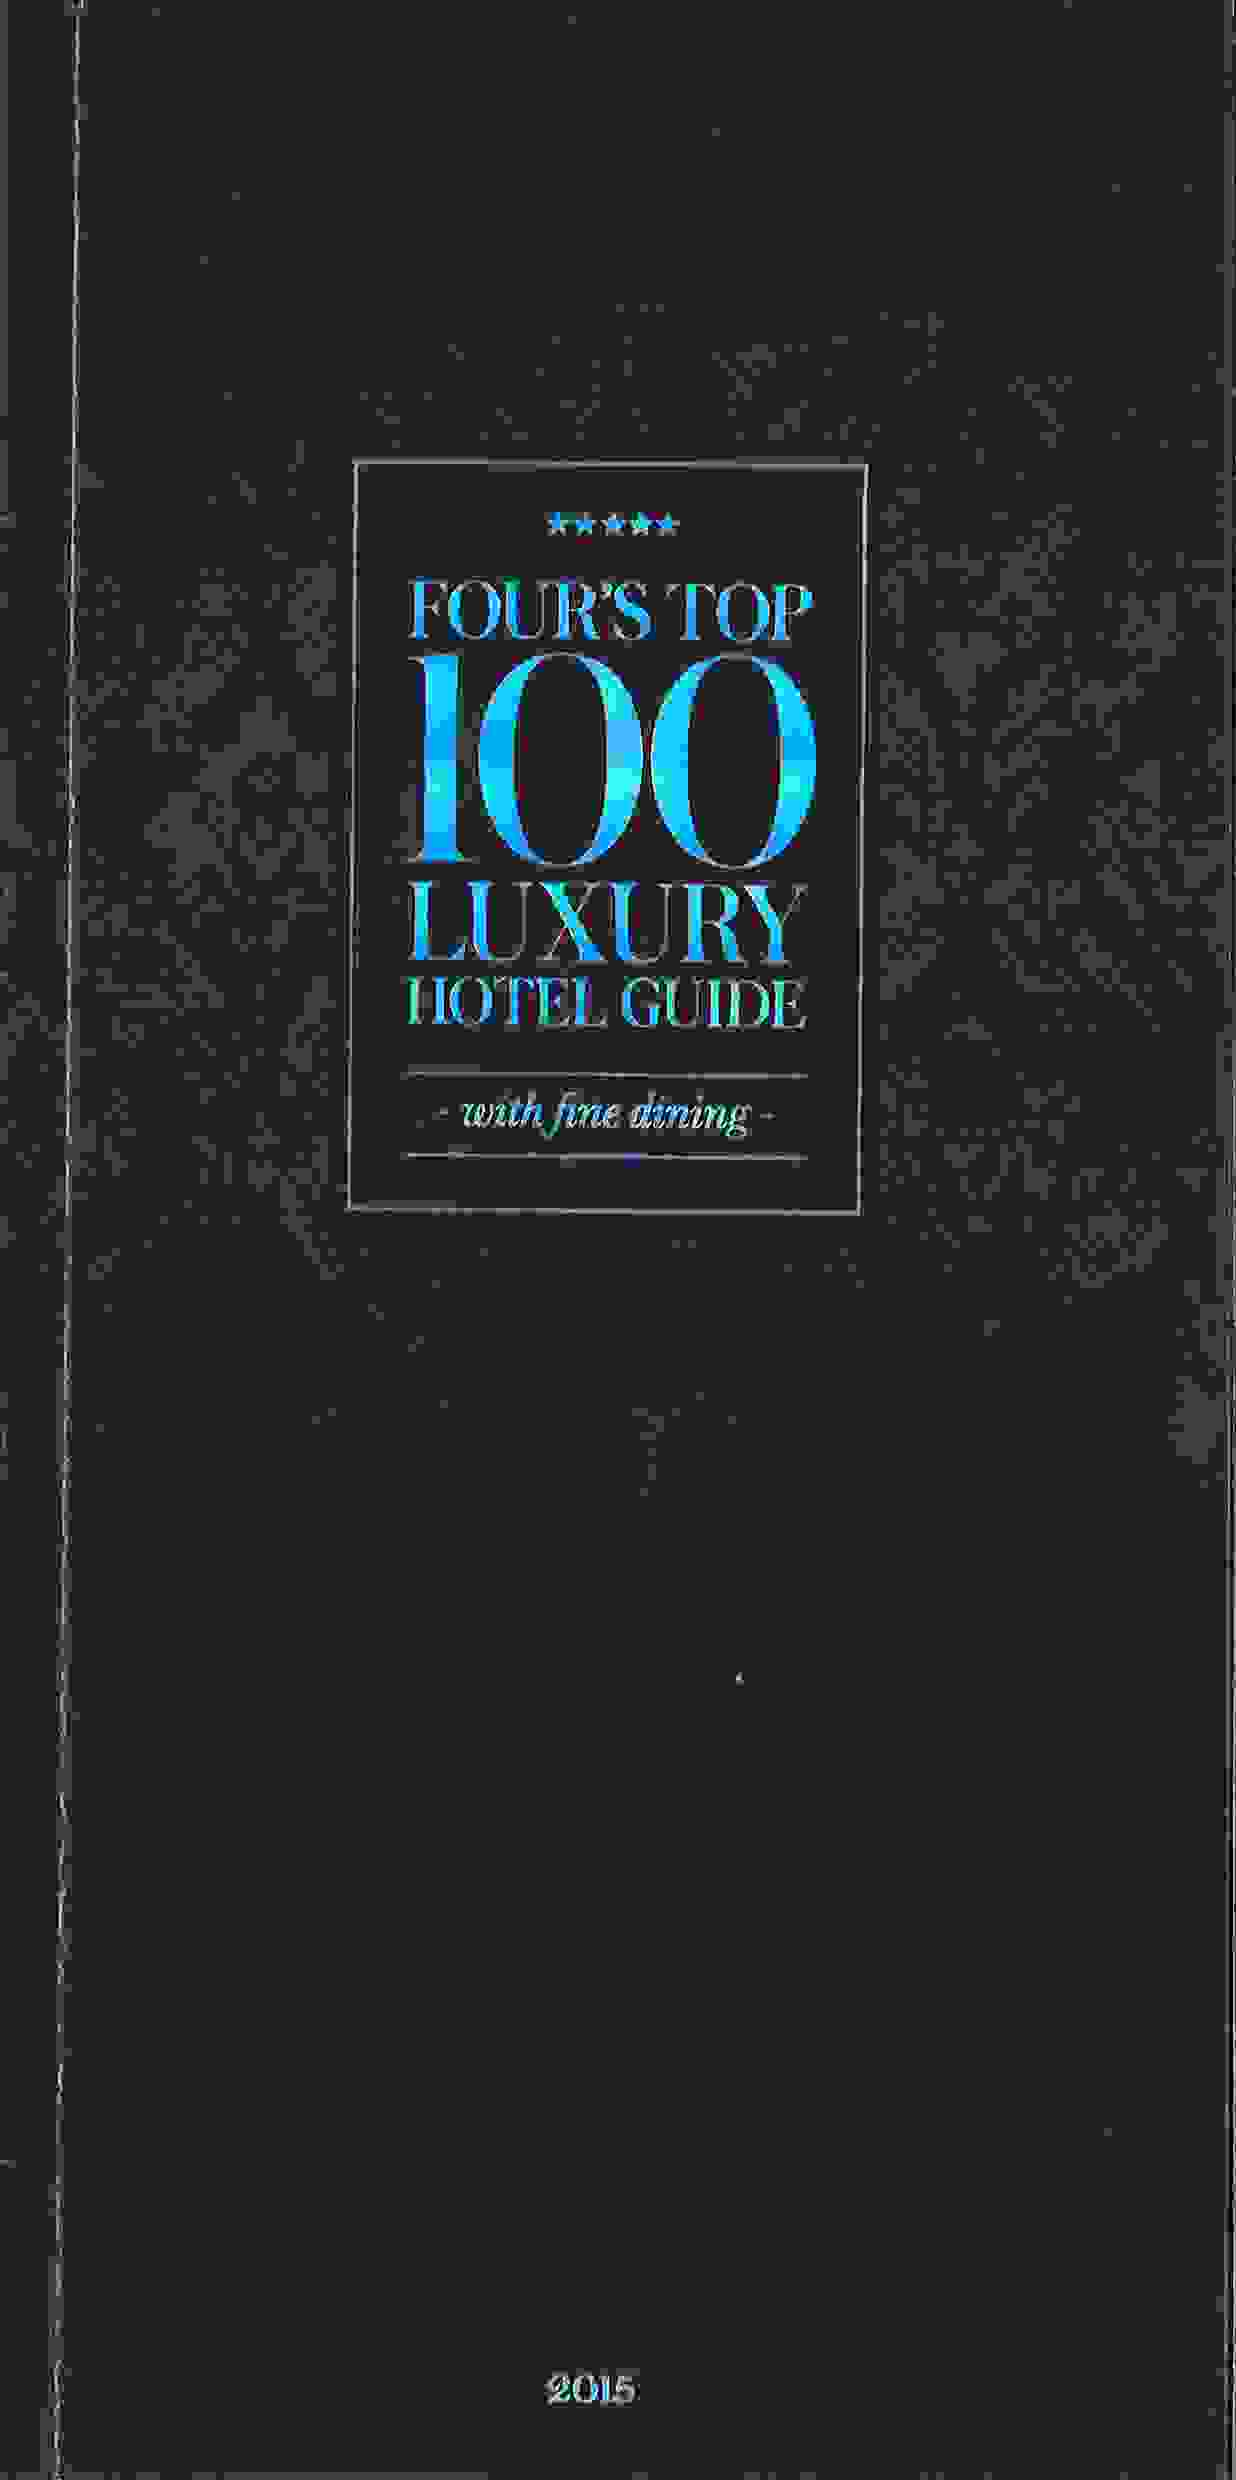 FOUR'S TOP 100 LUXURY HOTEL GUIDE